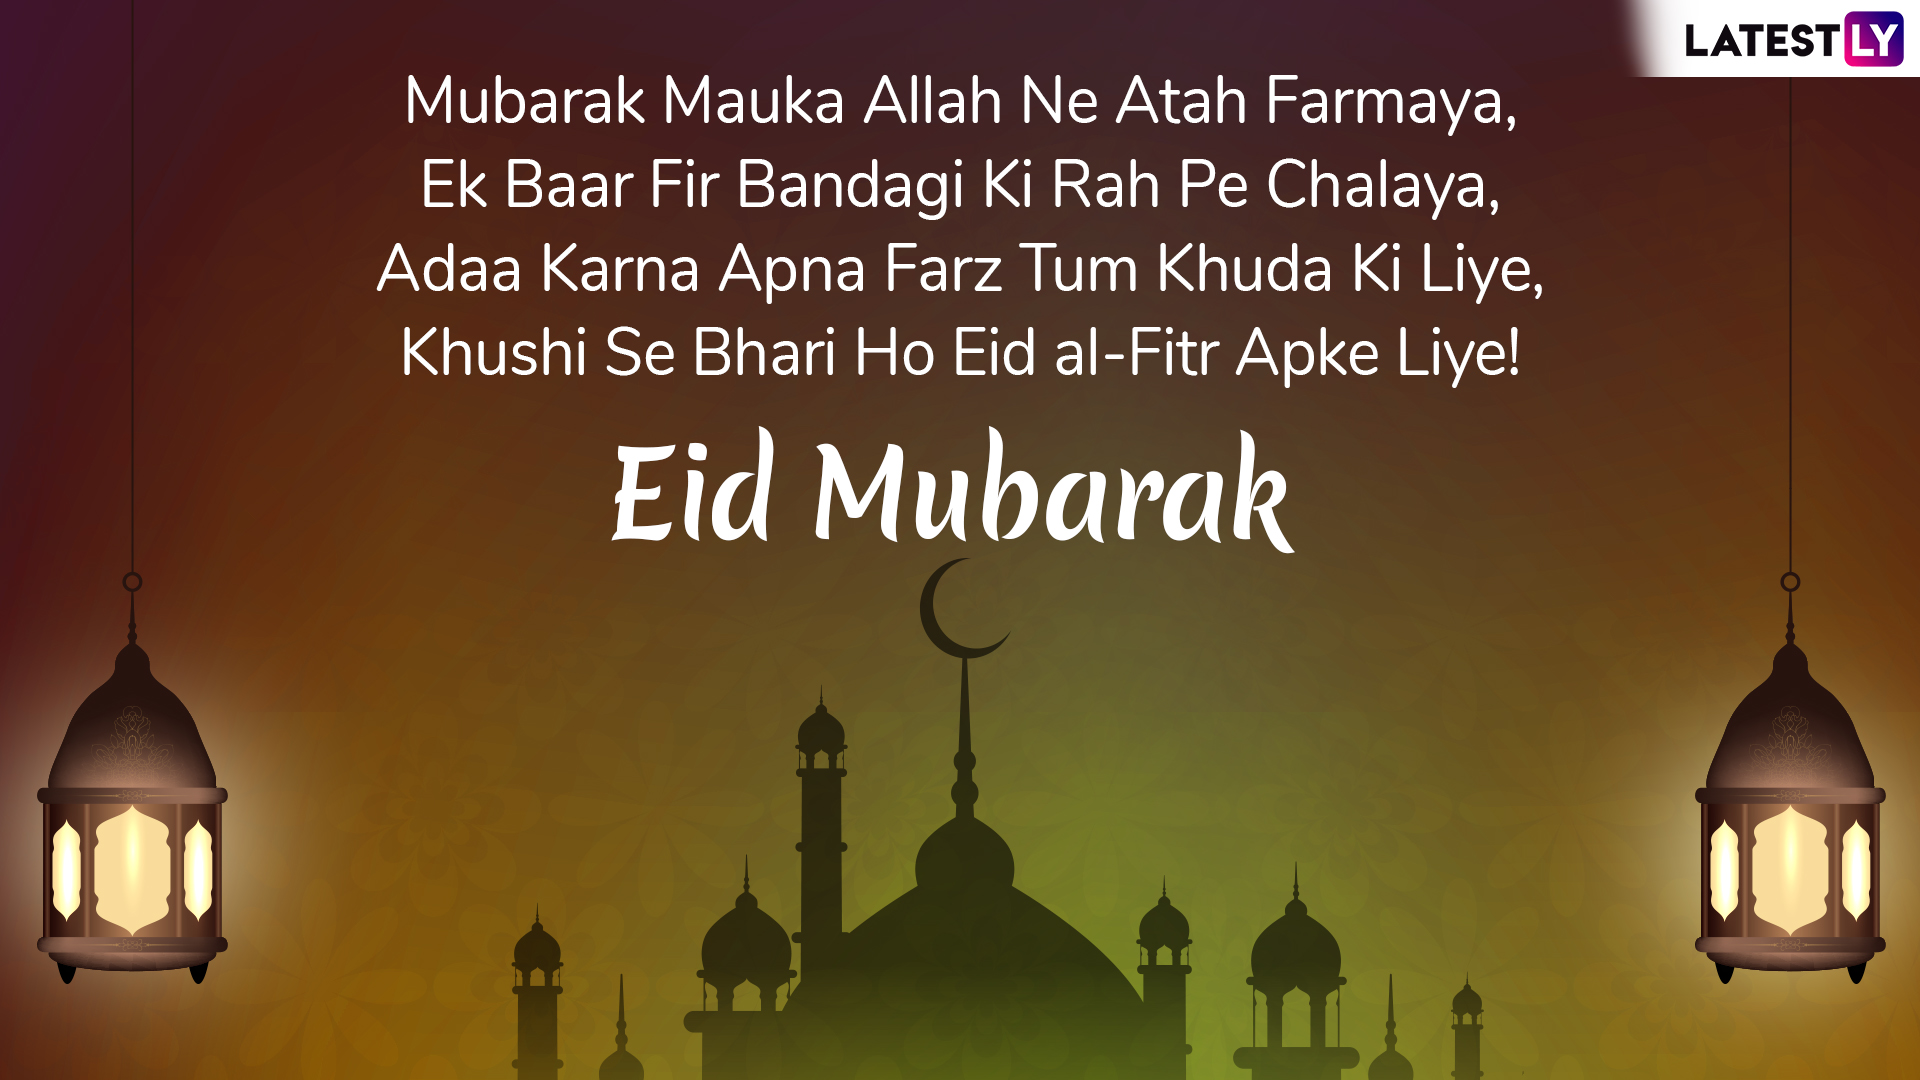 Eid Mubarak Shayari 2019 in Urdu: WhatsApp Stickers, Chand